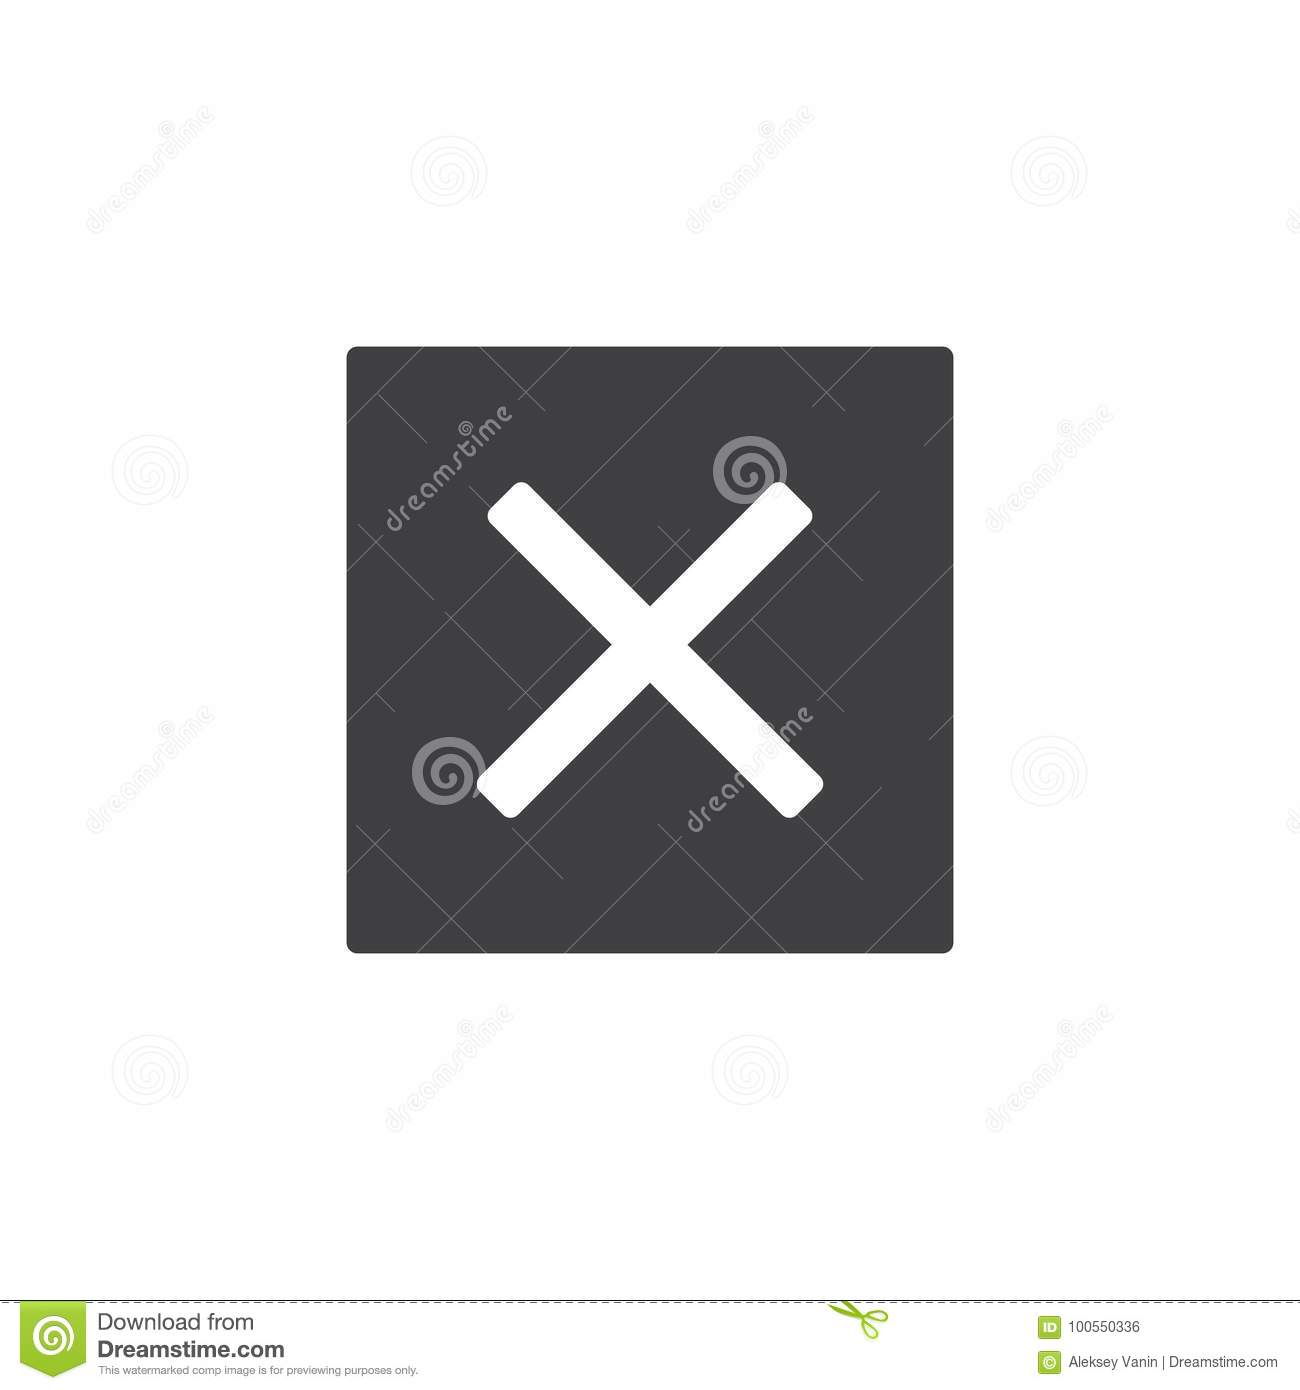 Do Not Dry Icon Vector Stock Vector Illustration Of Machine 100550336